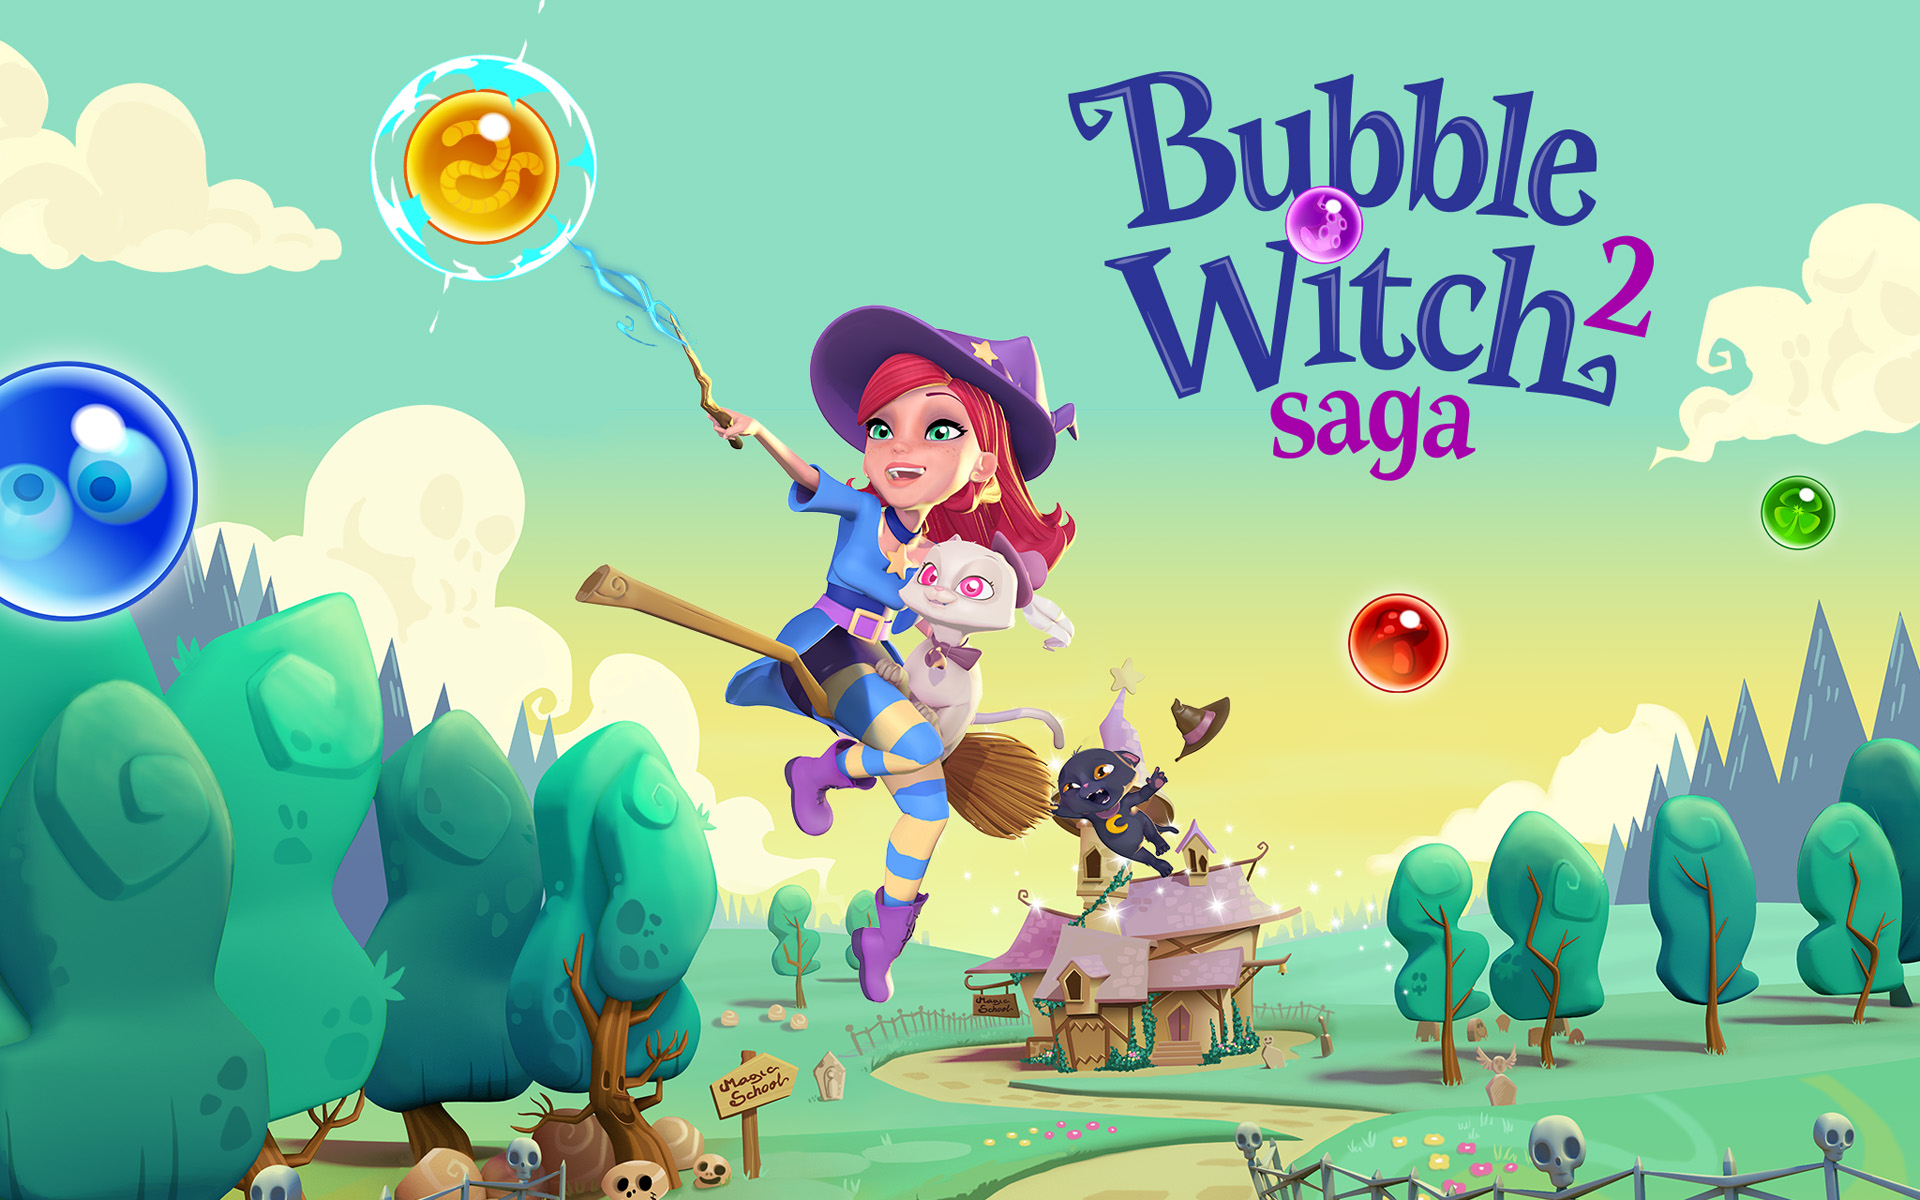 Bubble Witch 2 Saga For PC (Windows 7, 8, 10, XP) Free ...